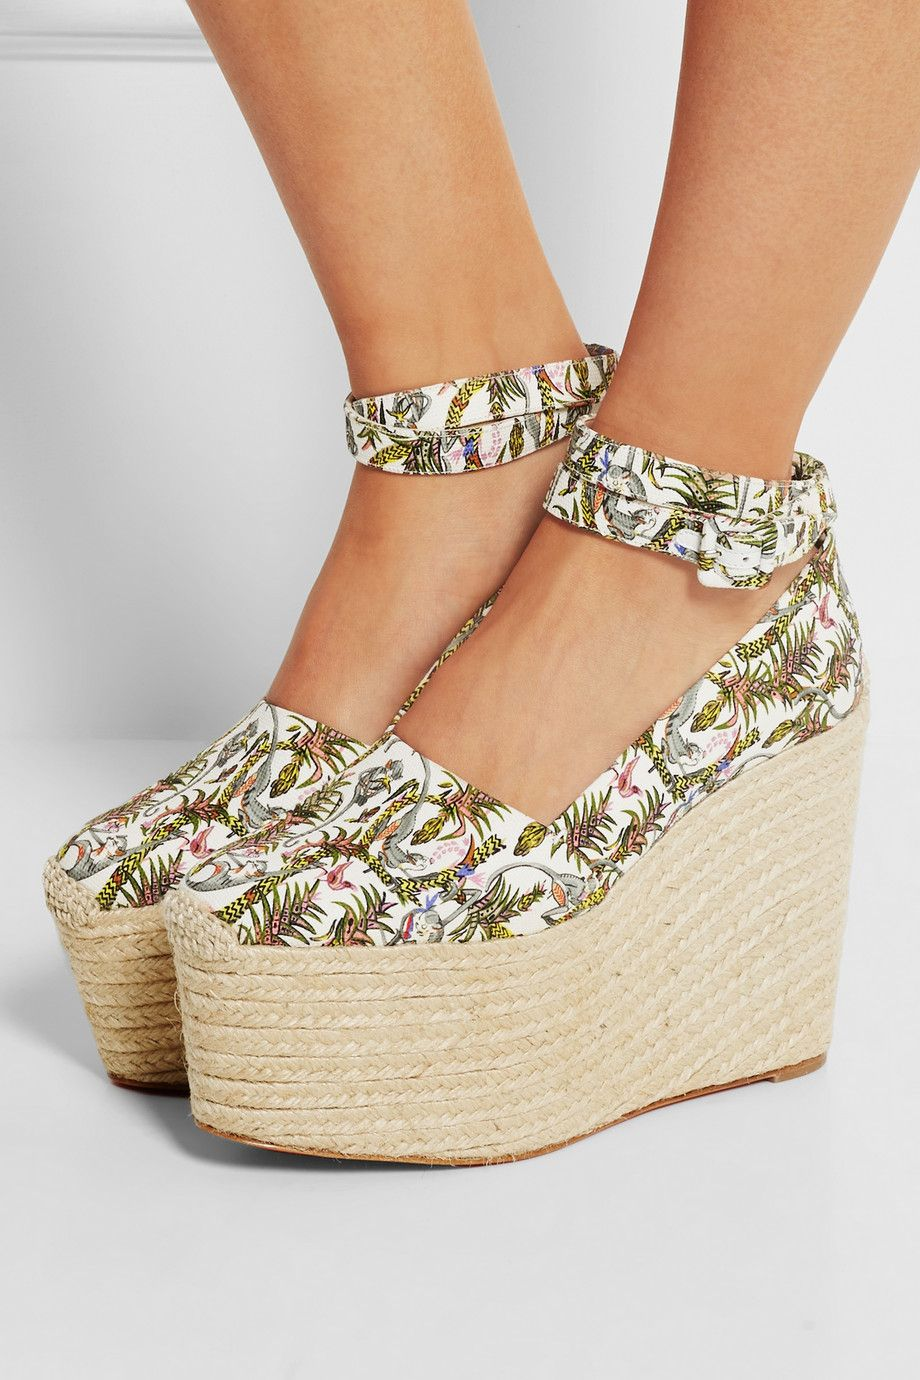 Christian Louboutin Wedges gris